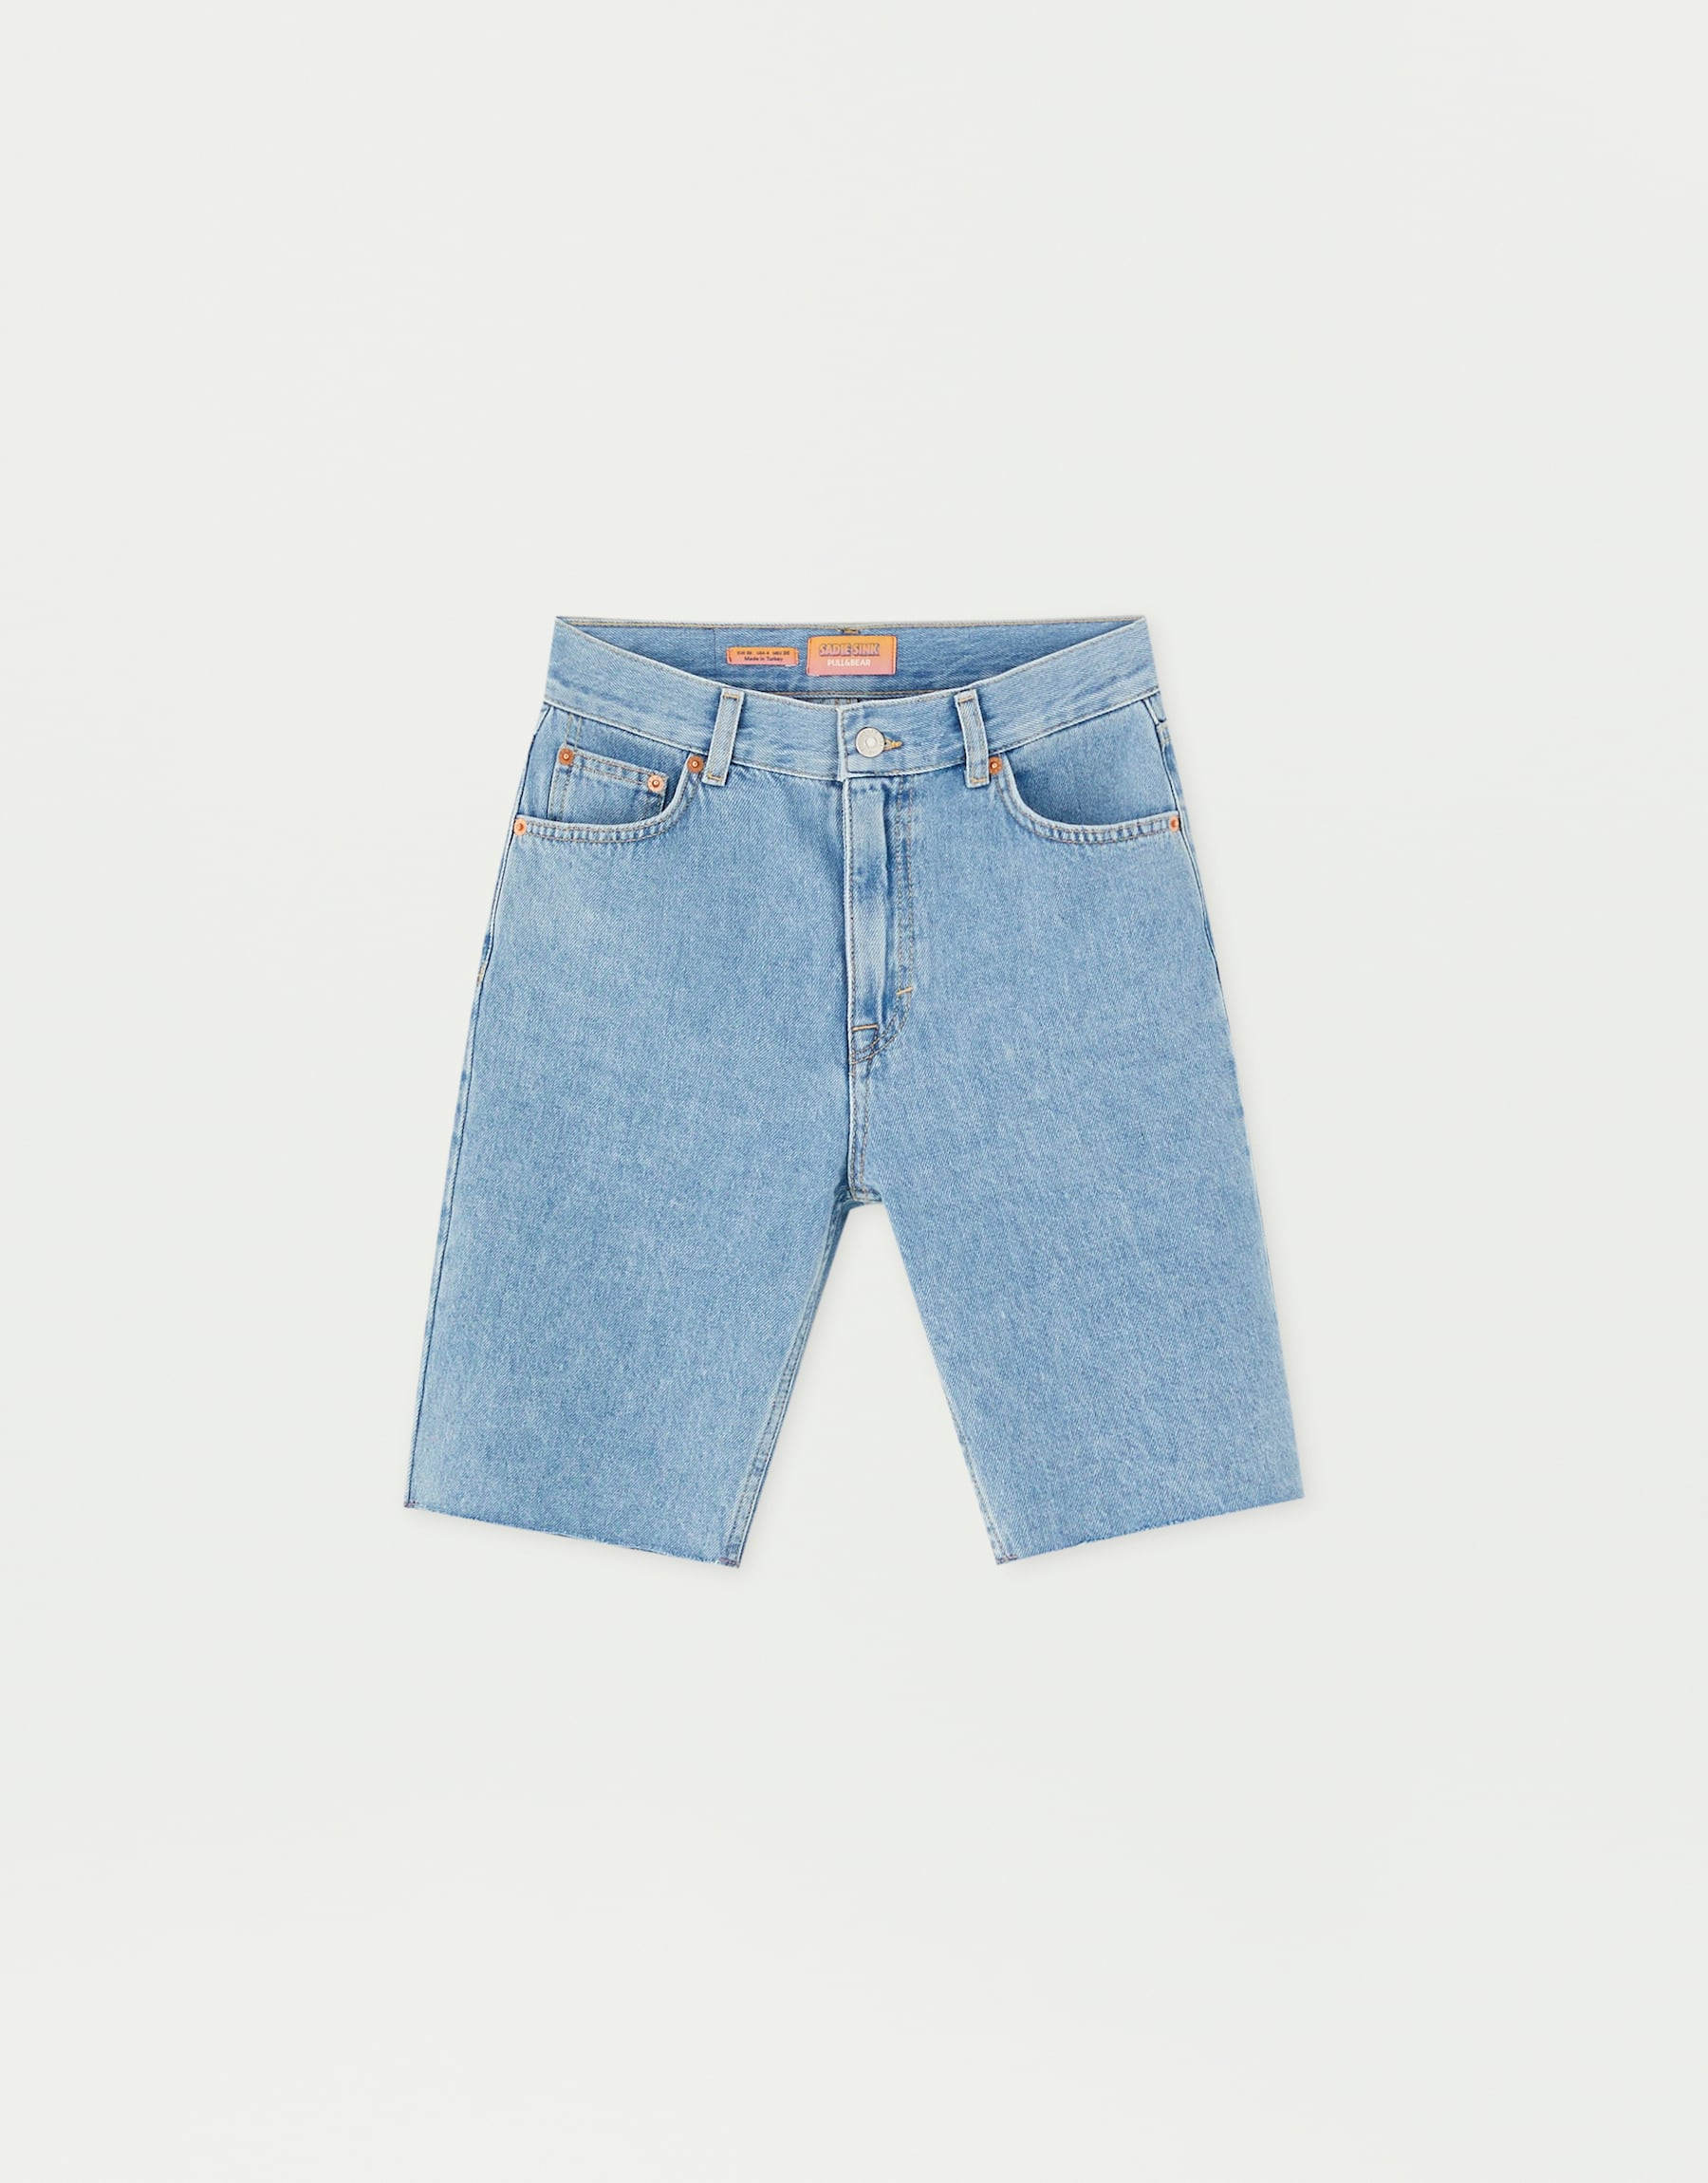 Sadie Sink Denim Bermudas, $45.90